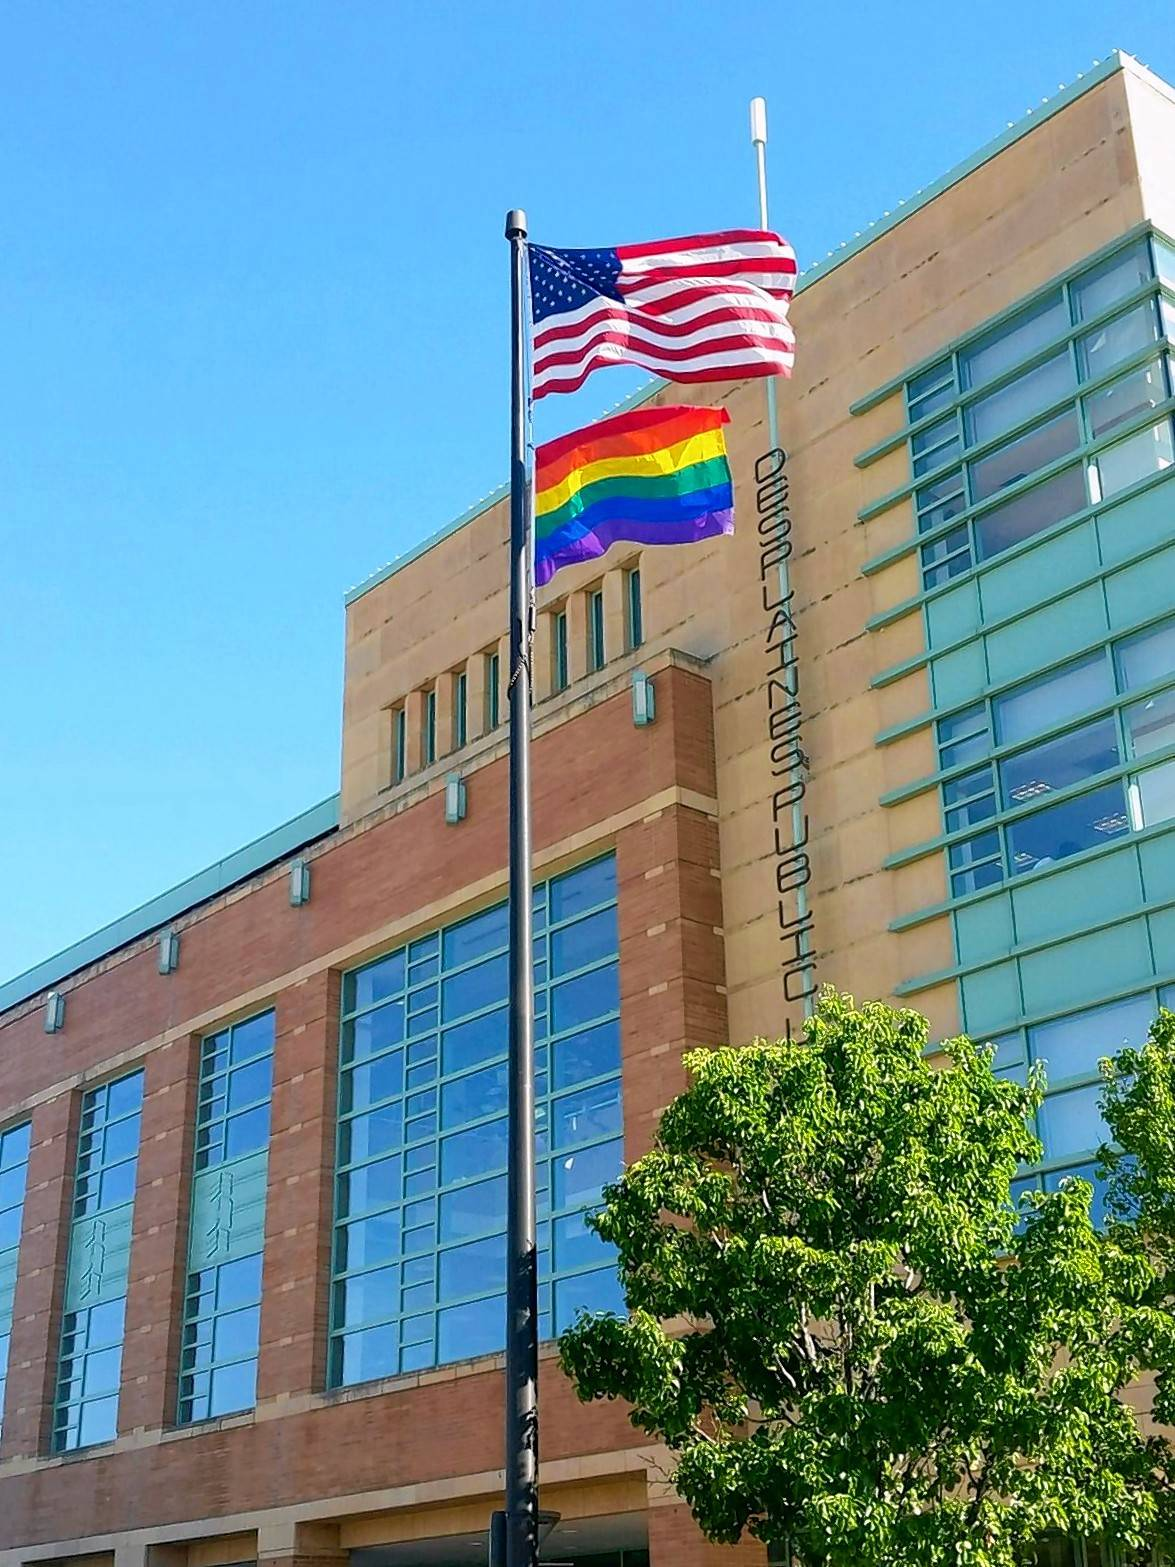 In response to the rainbow flag flying outside the Des Plaines Public Library, city aldermen on Tuesday narrowly passed a measure allowing only the flags of the United States, state of Illinois and city of Des Plaines, and the POW-MIA flag to fly over municipal property. Any other flags would require prior approval from the city council.